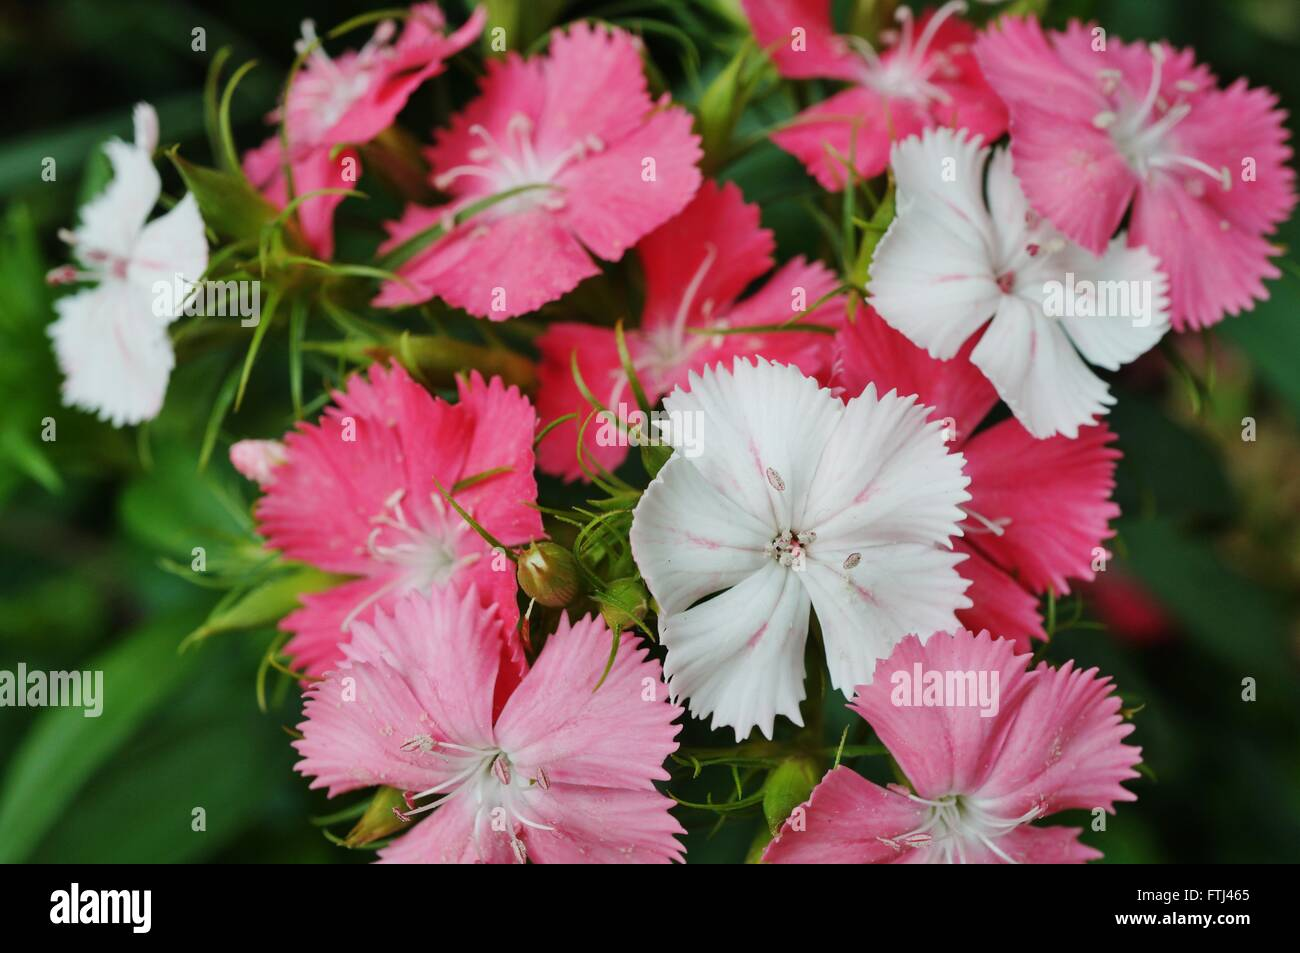 Pink and white sweet william dianthus flowers stock photo 101202029 pink and white sweet william dianthus flowers mightylinksfo